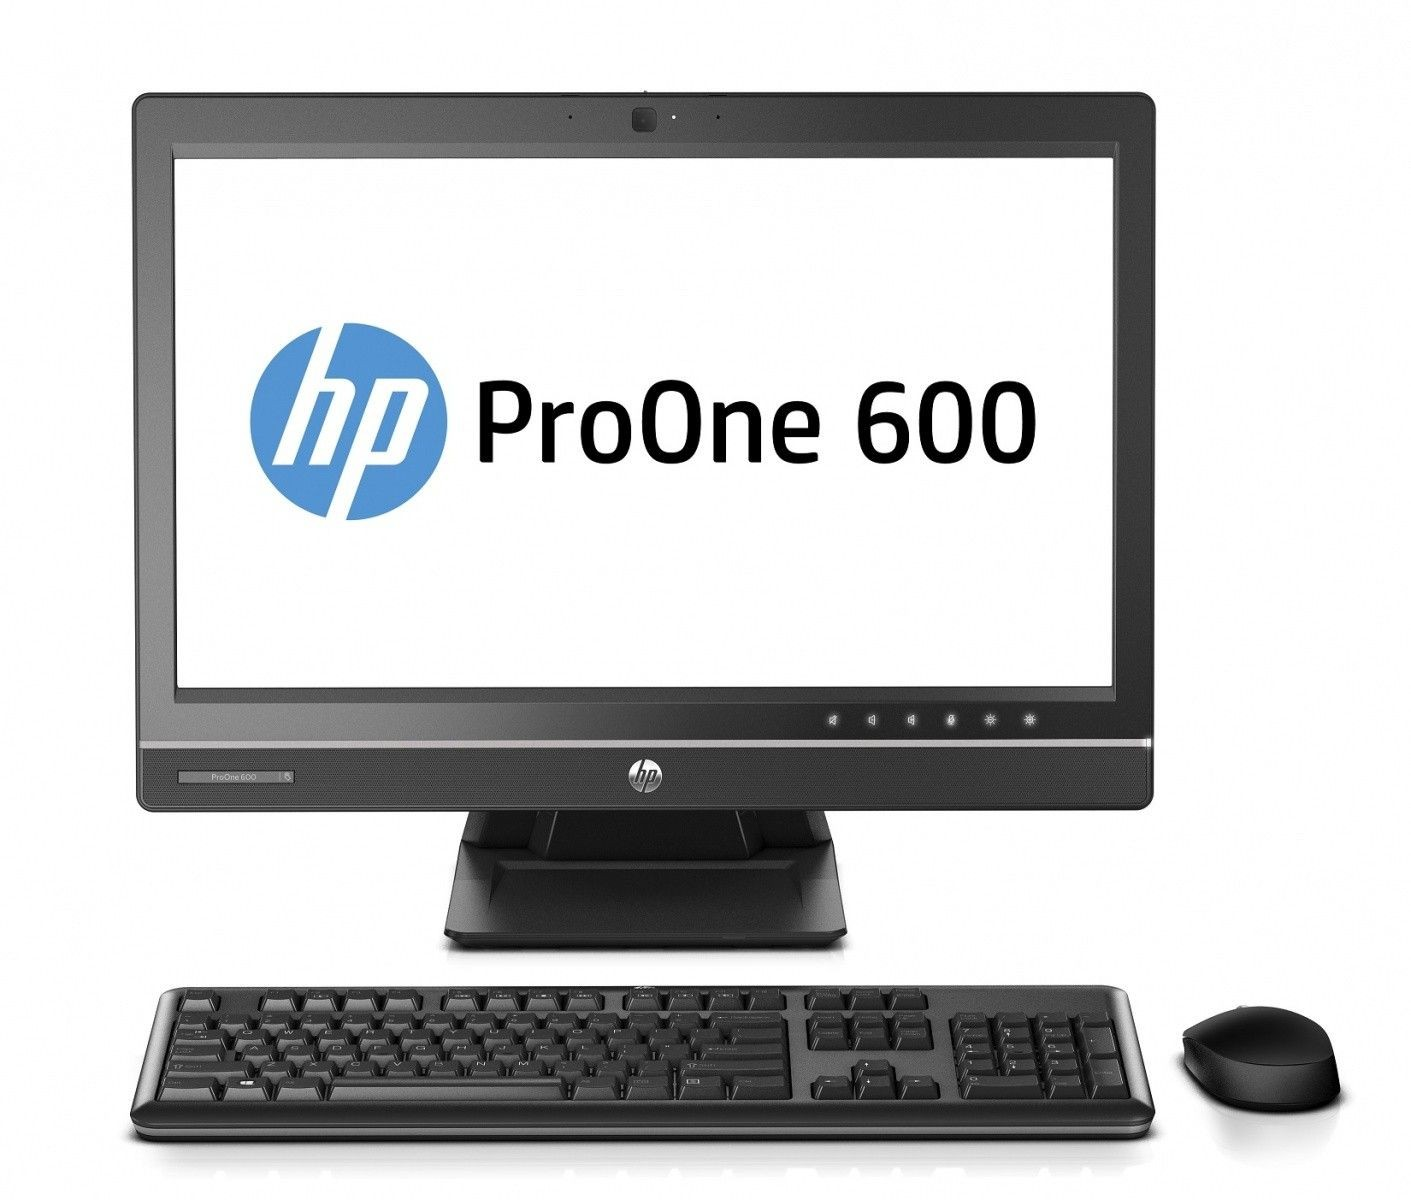 HP ProOne 600 J4U62EA - i5-4590 / 21,5 / 4GB / 500GB / DVDRW / Win7-8Pro / AIO